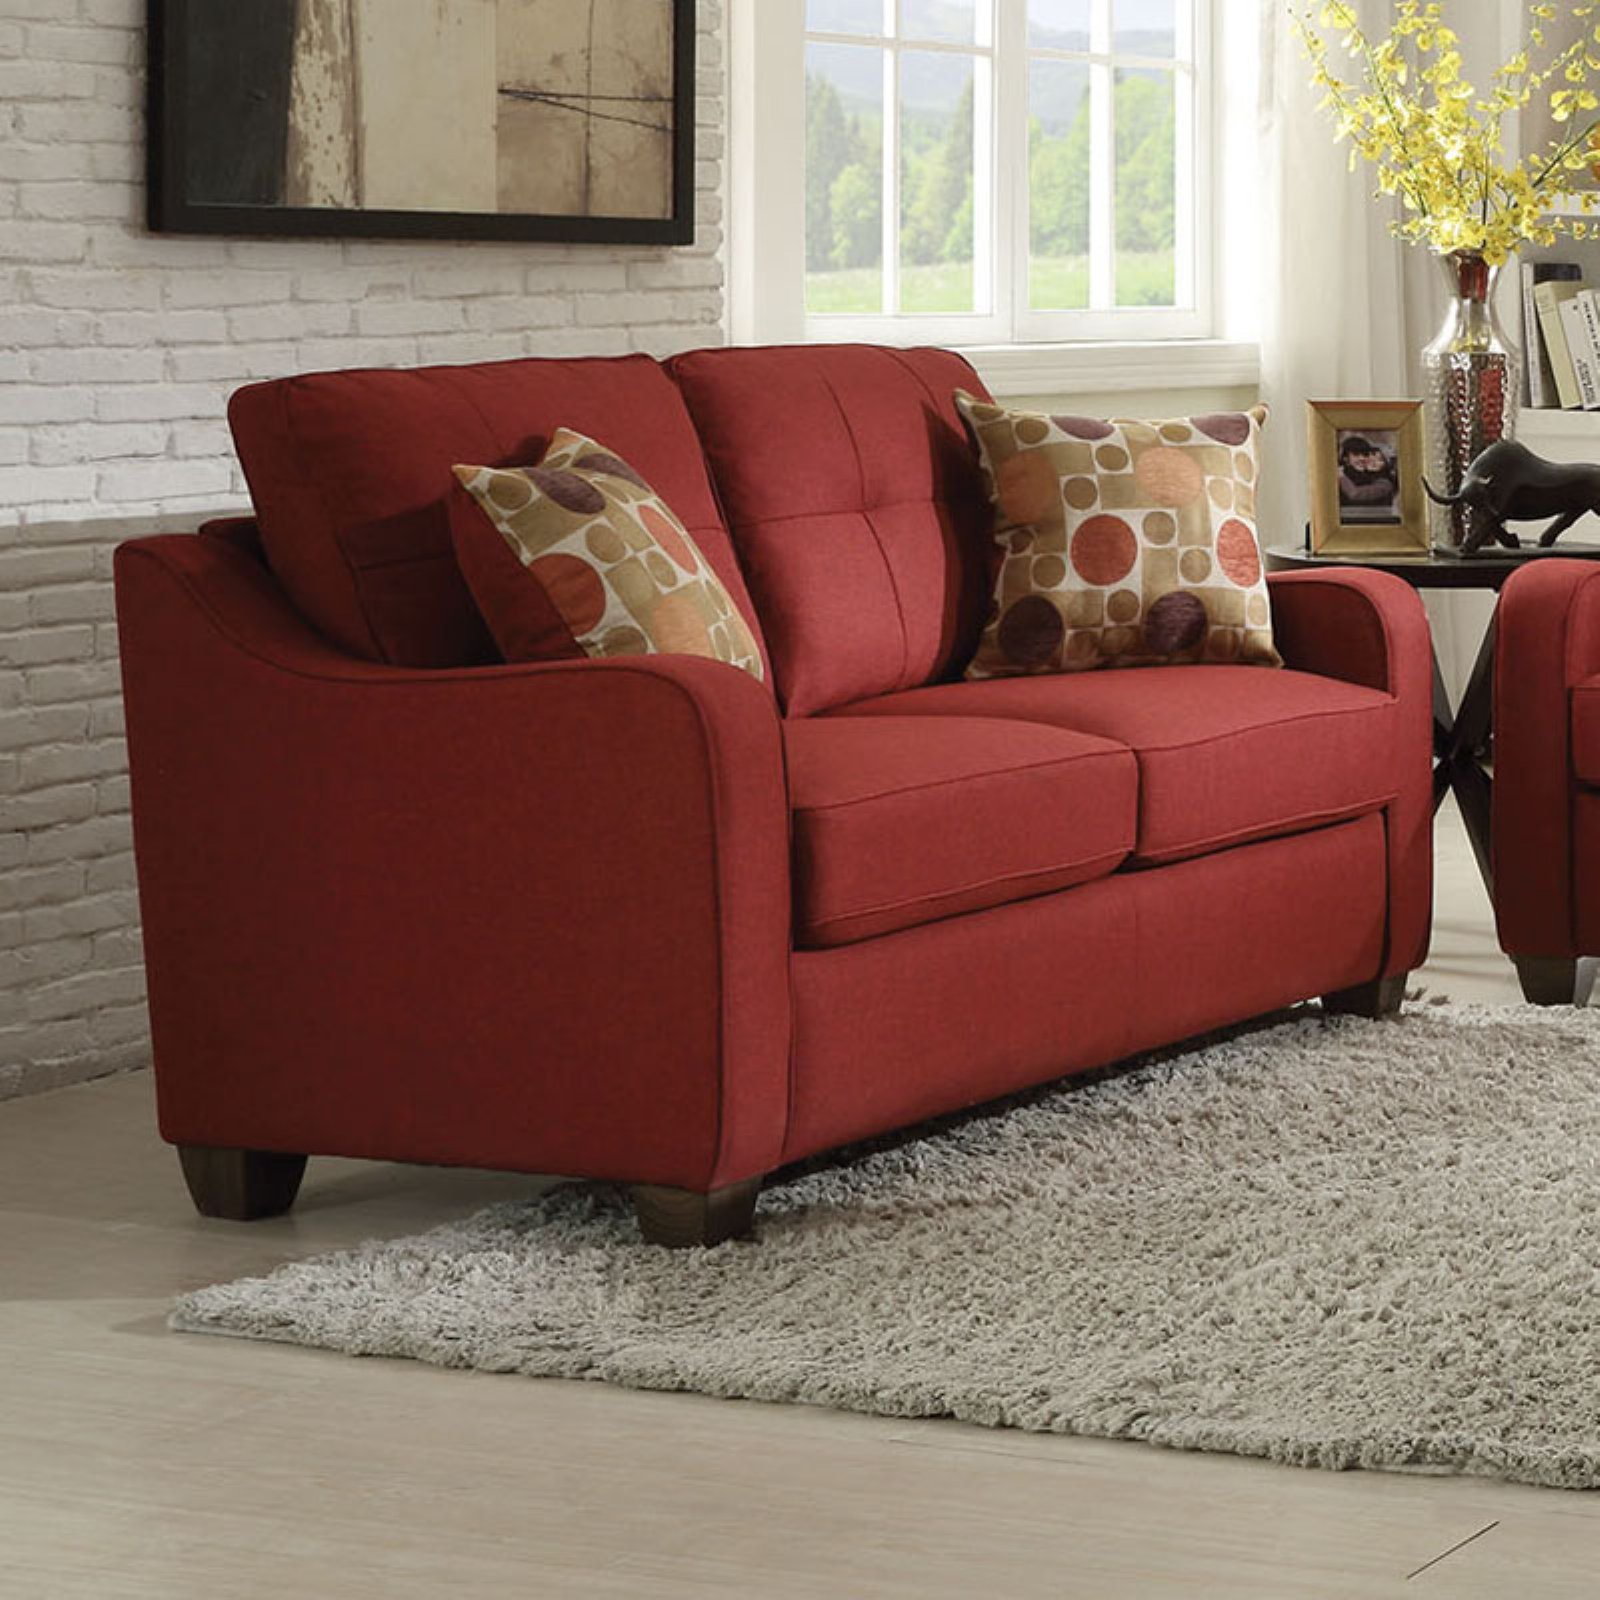 ACME Cleavon II Loveseat with 2 Pillows, Red Linen